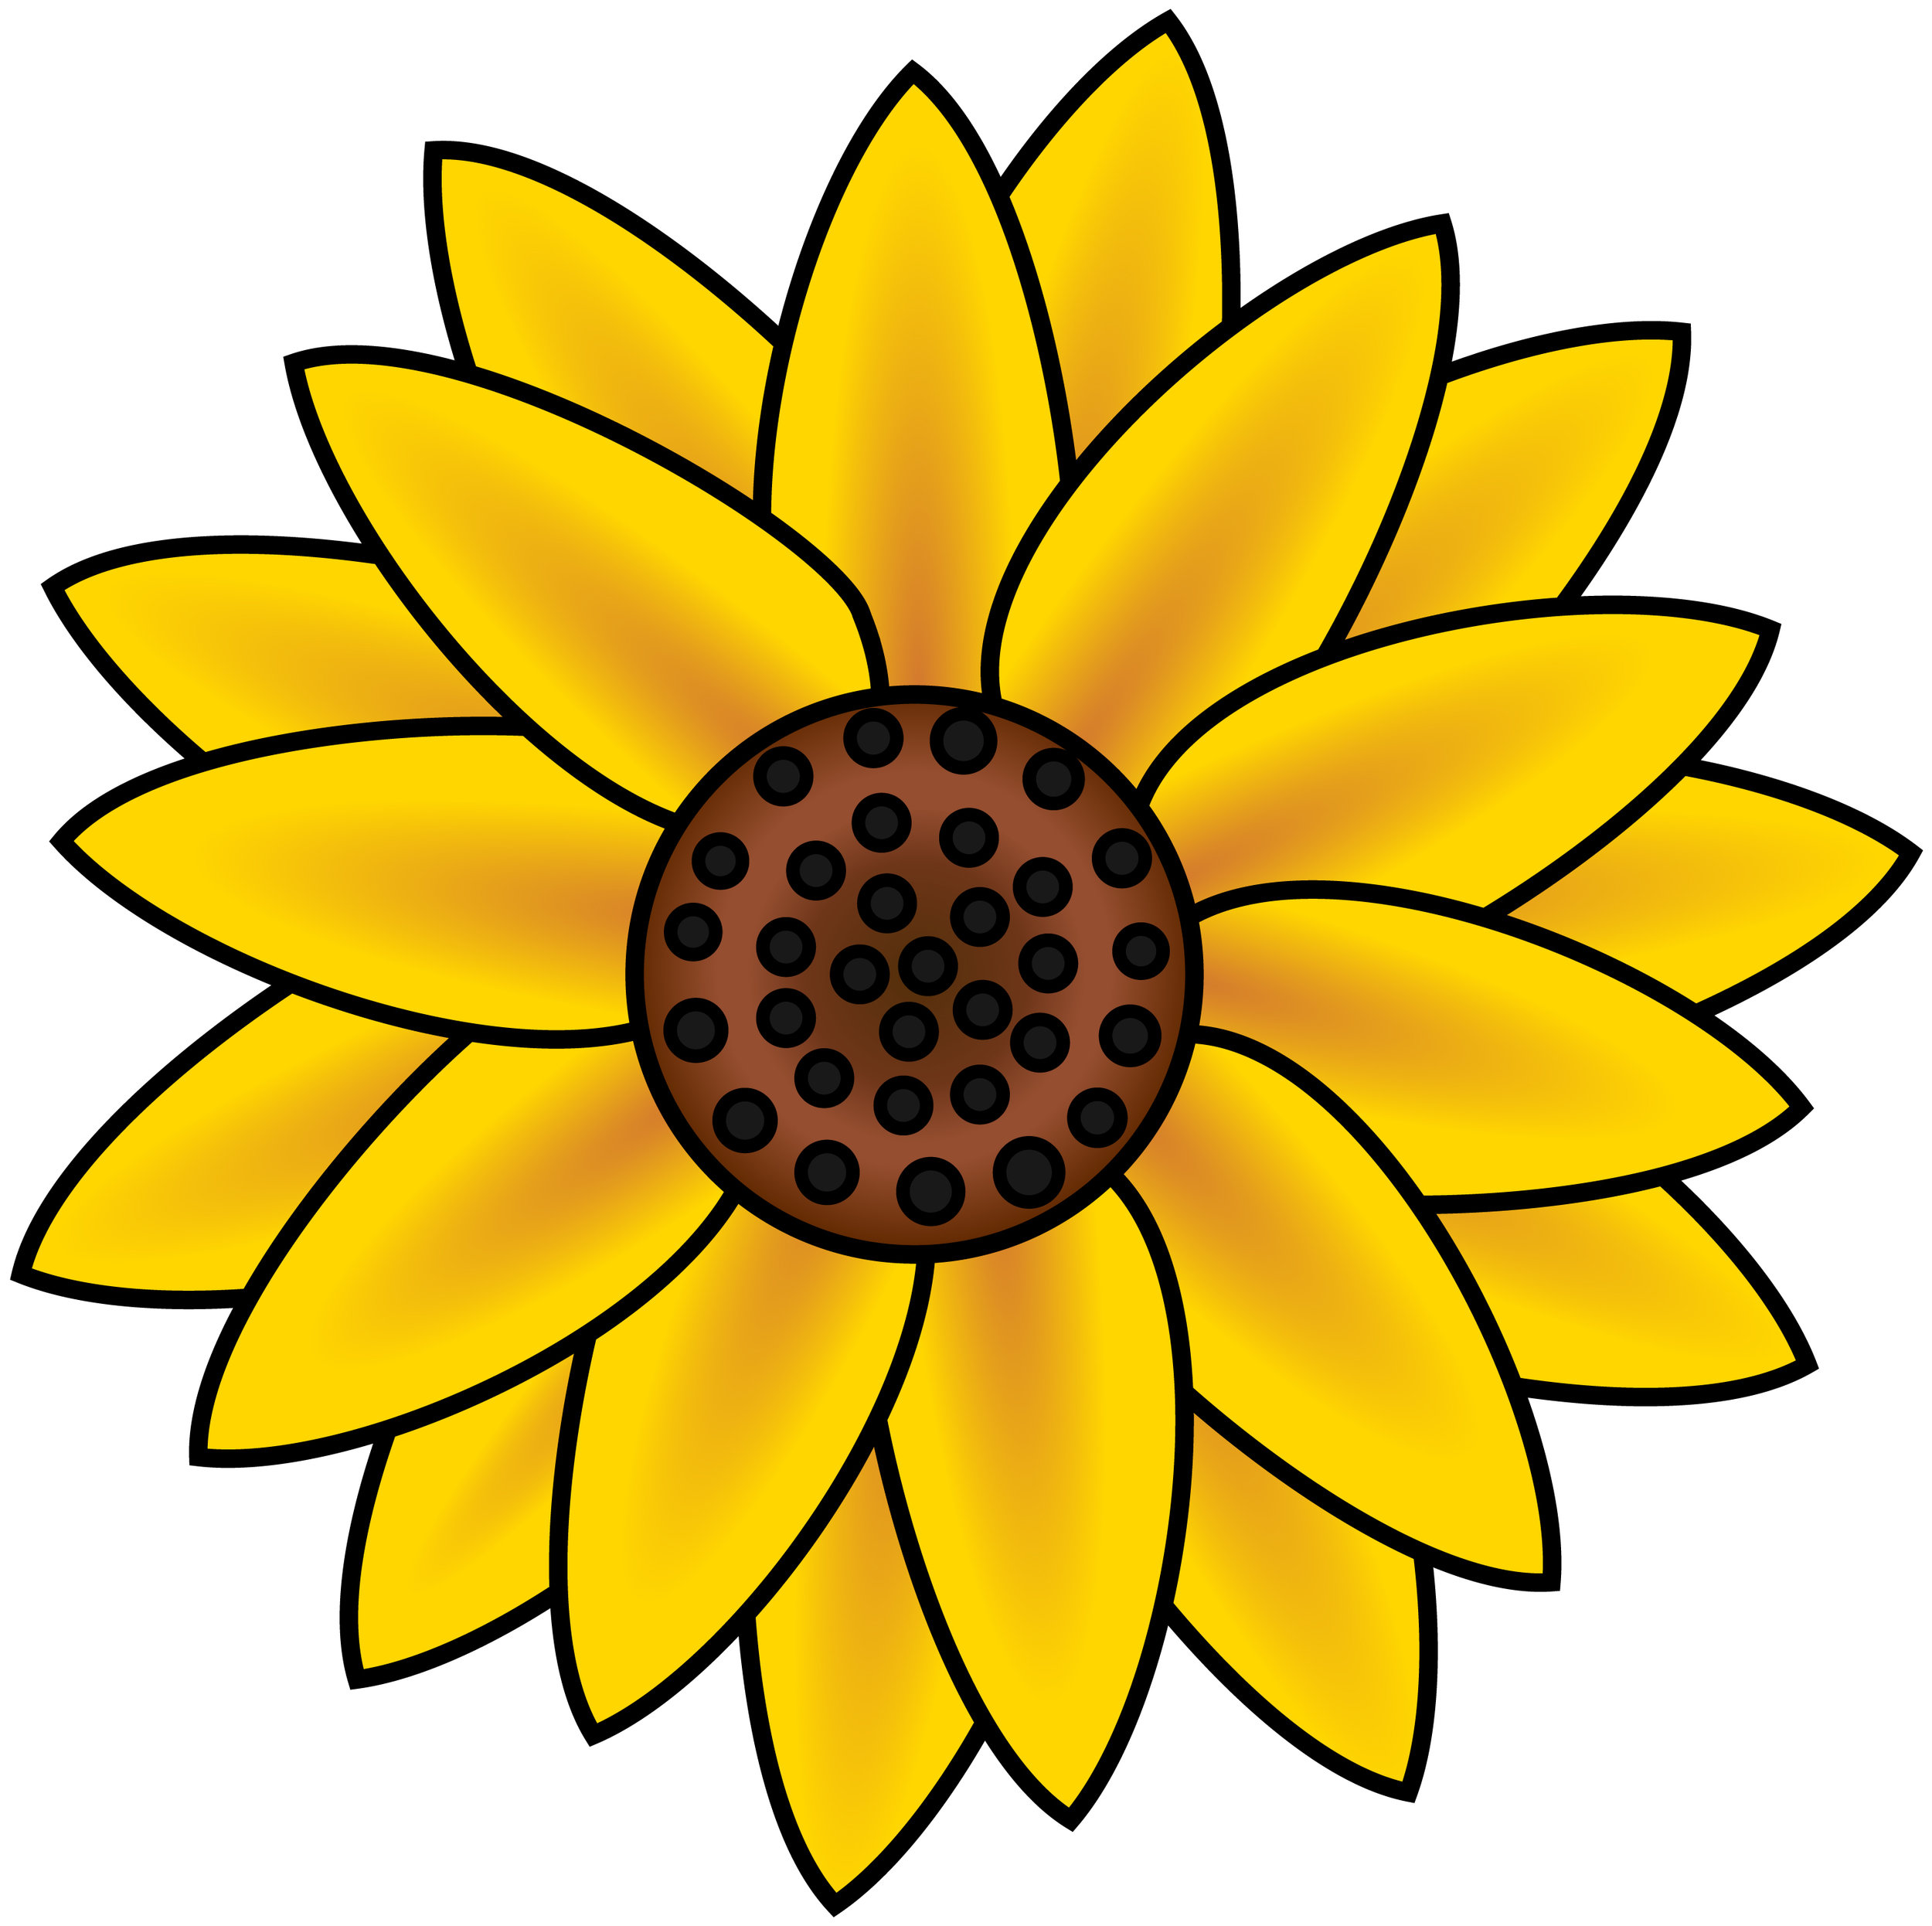 earth-sunflower.jpg